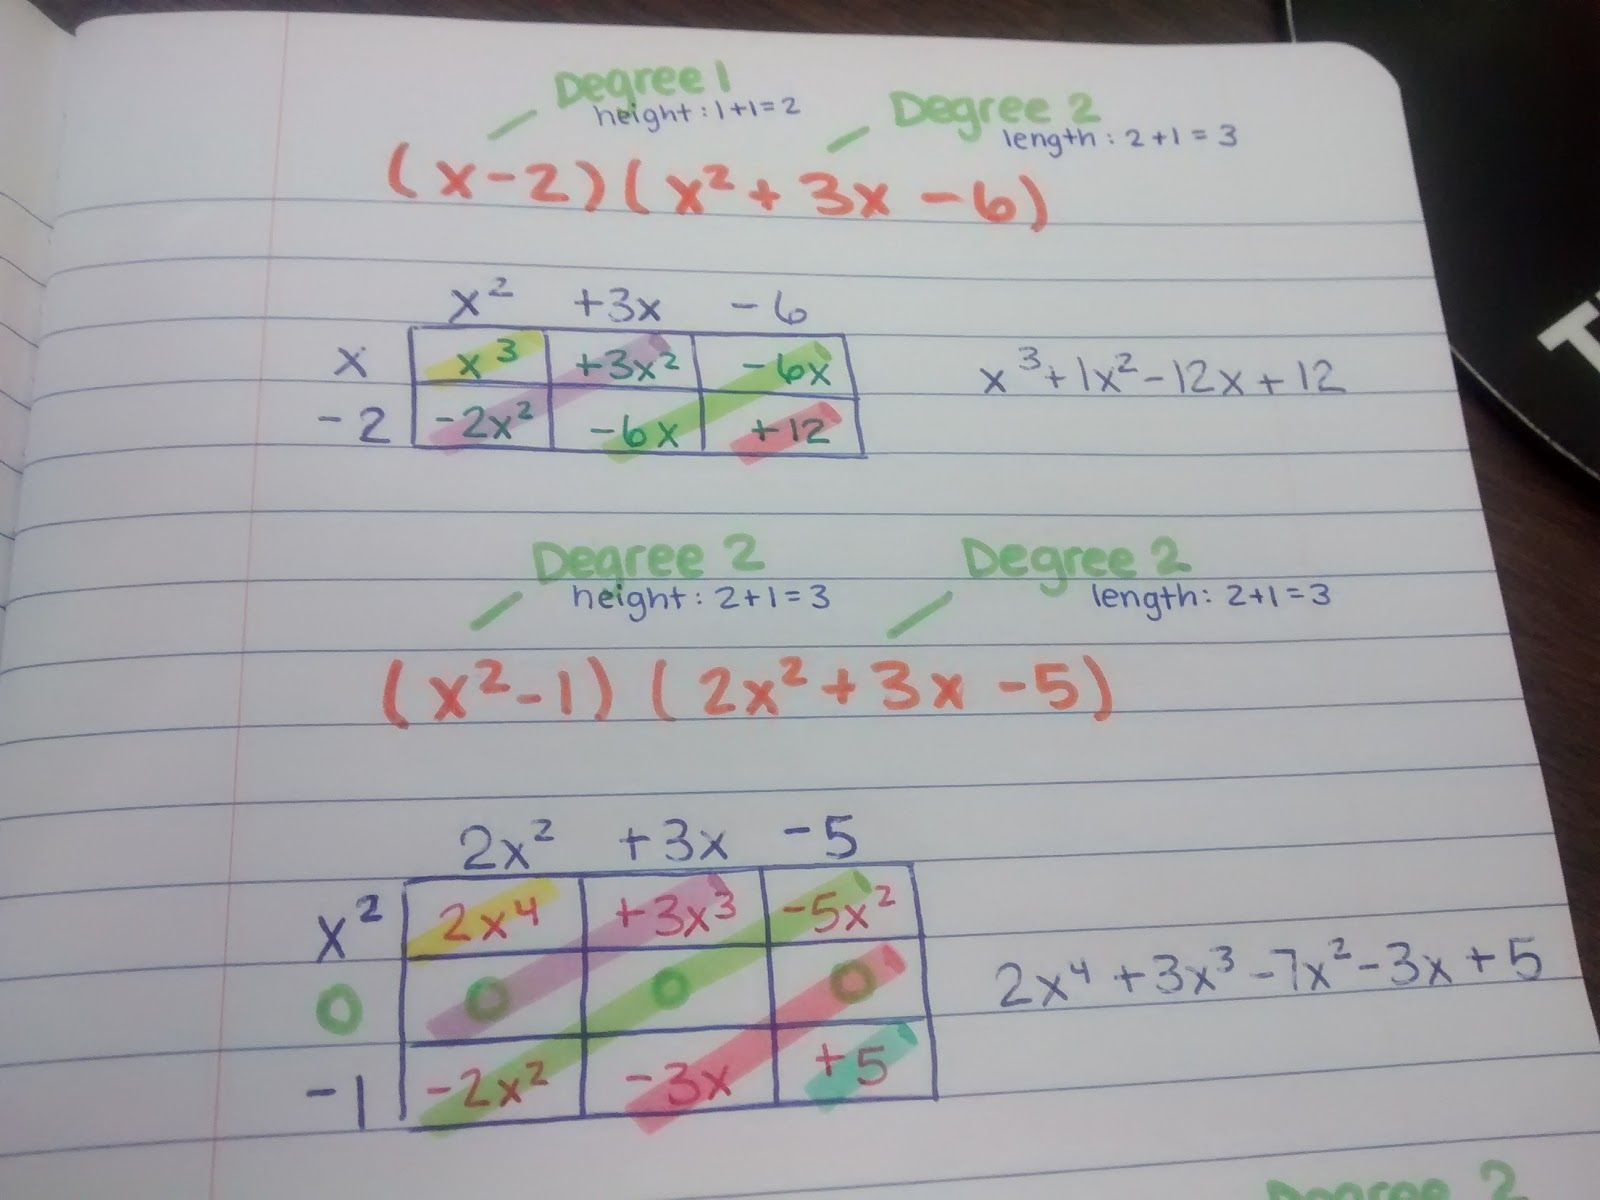 worksheet Multiplying A Polynomial By A Monomial Worksheet math love multiplying polynomials using the box method mathy i finally got to introduce my algebra 2 students ive been waiting impatiently for this since august